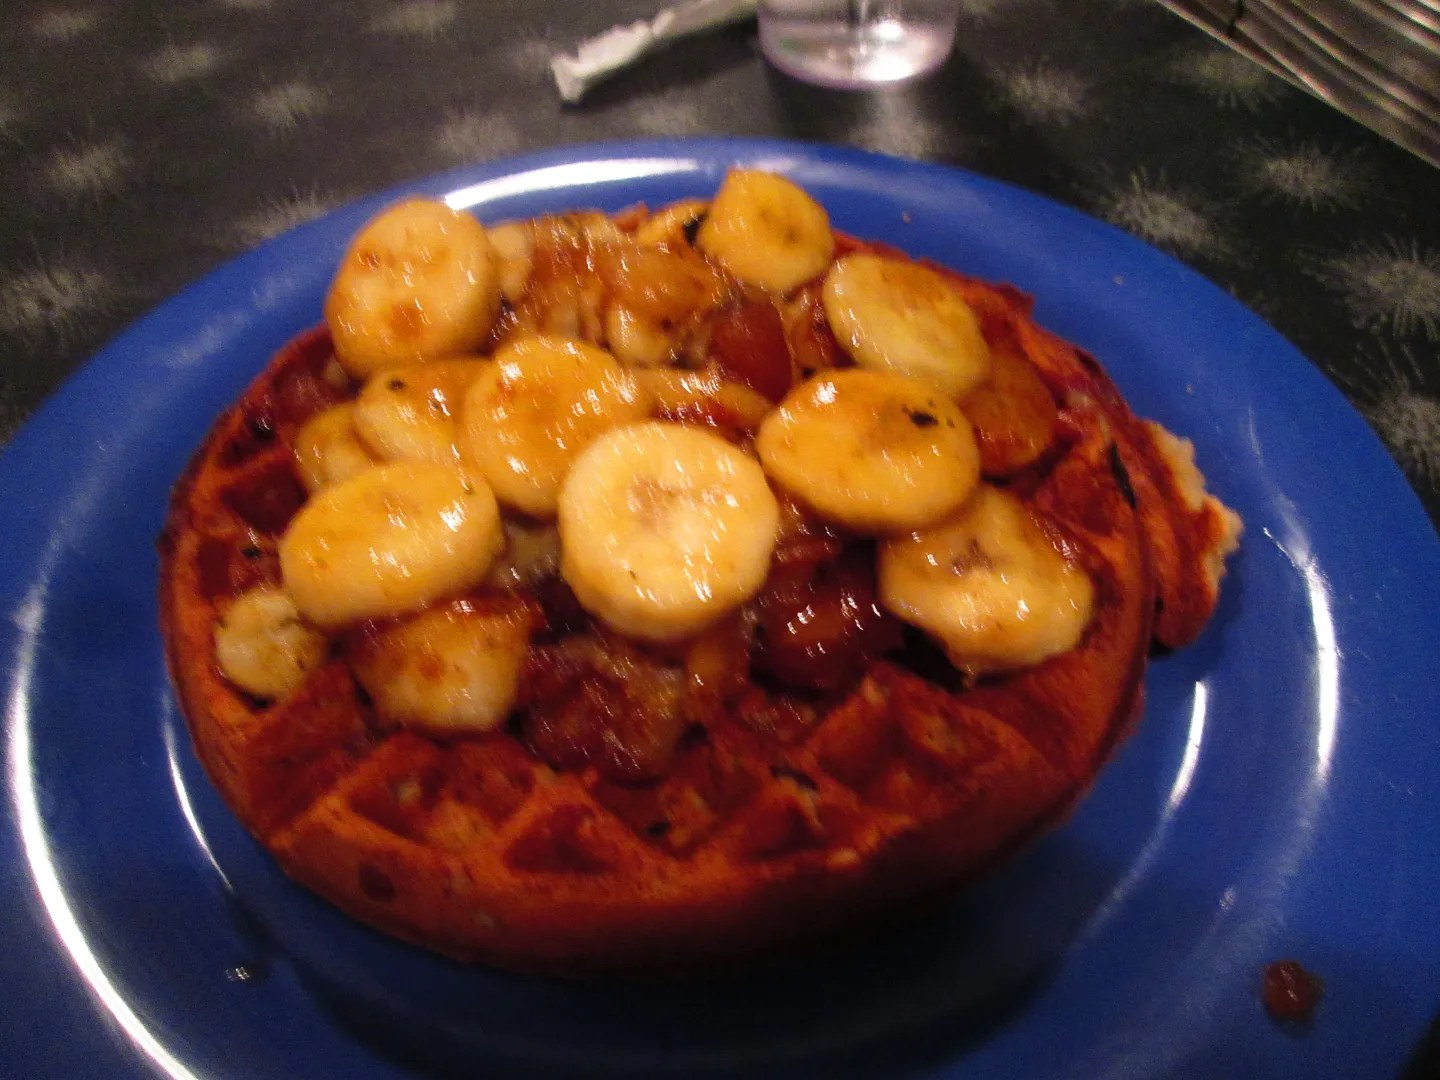 waffle with caramelized bananas